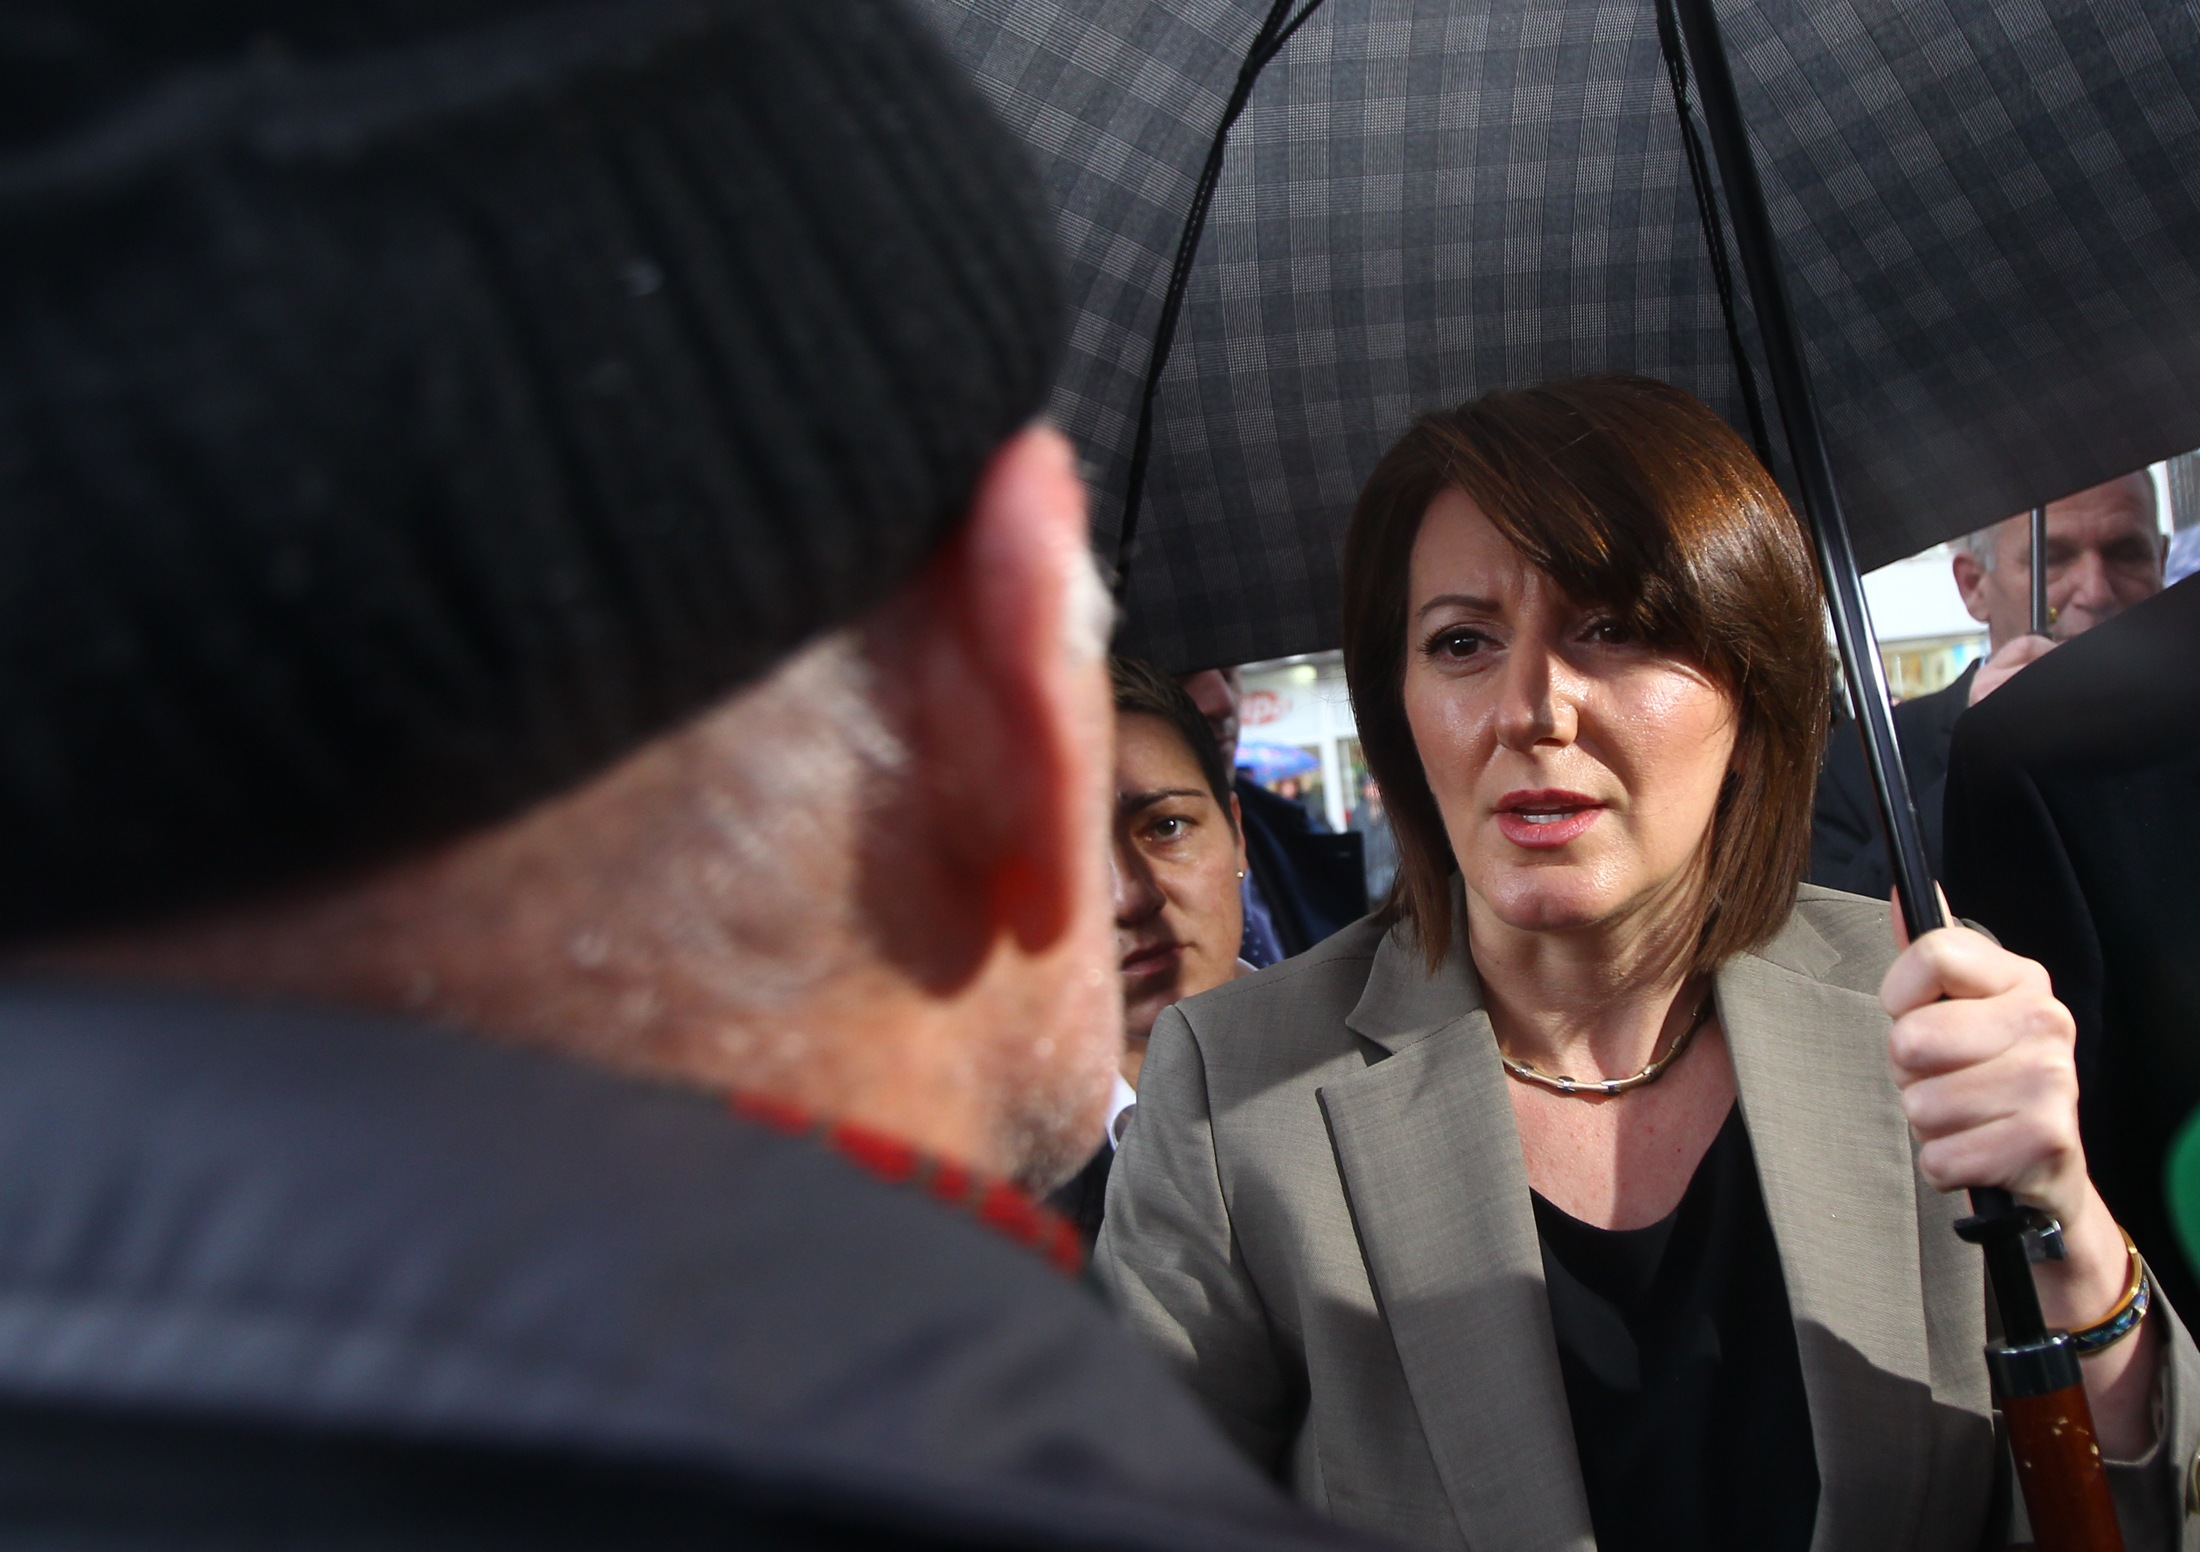 The president of Kosovo, Atifete Jahjaga speaks with people in the town of Vushtrri February 6, 2015. The European Union is experiencing a steep rise in the number of Kosovo citizens smuggling themselves into the affluent bloc, with 10,000 filing for asylum in Hungary in just one month this year compared to 6,000 for the whole of 2013. It follows a relaxation of travel rules allowing Kosovars to reach EU borders via Serbia and has coincided with political turmoil and street unrest in Kosovo fuelled by poverty, high unemployment and economically debilitating corruption. REUTERS/Hazir Reka (KOSOVO - Tags: - Tags: POLITICS)